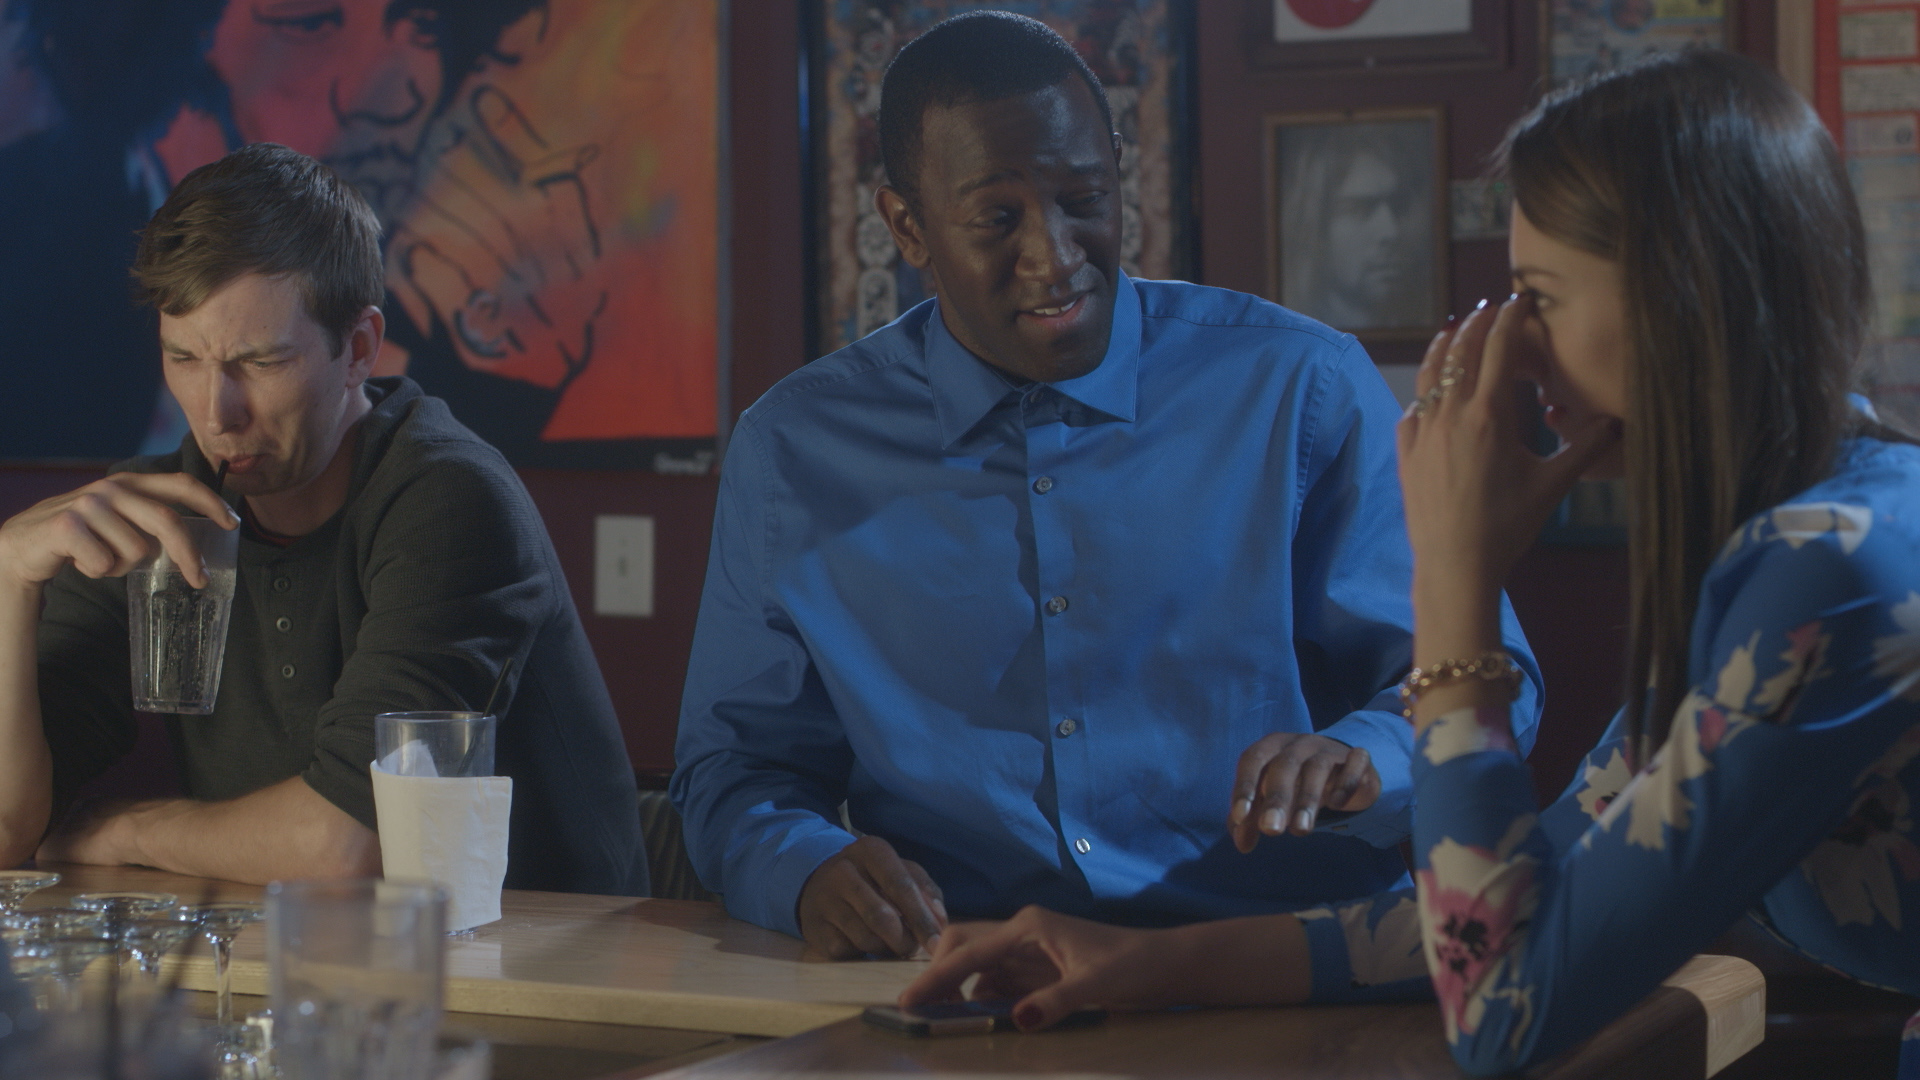 Chris Fisher, Jamaal Eversley and Samantha Webb in Geena Matuson's short 'Depends,' filmed at Rock 'n' Roll Rib Joint in Medfield, MA. Cinematography by Denez McAdoo. See more work by The Girl Mirage #thegirlmirage @geenamatuson.